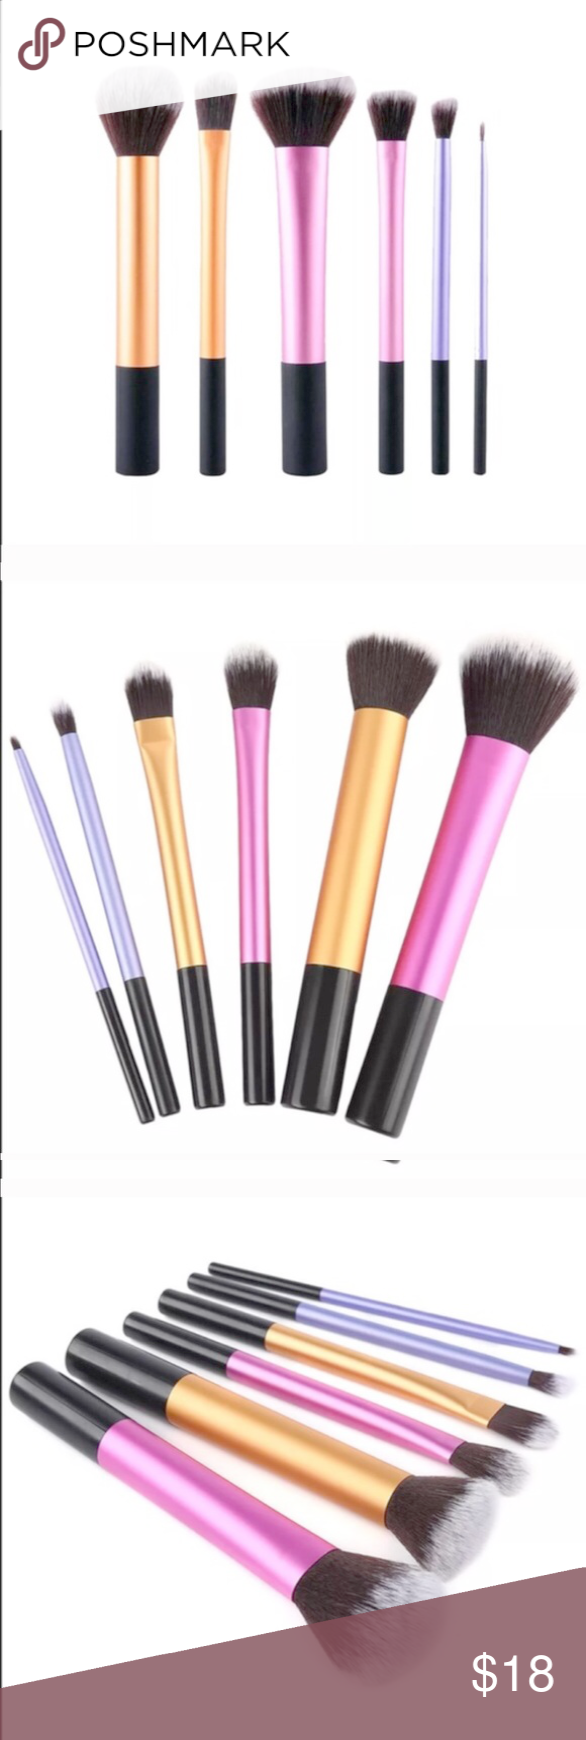 Non Comedogenic Makeup Brands In India Makeup Dupe For Anastasia Brow Wiz